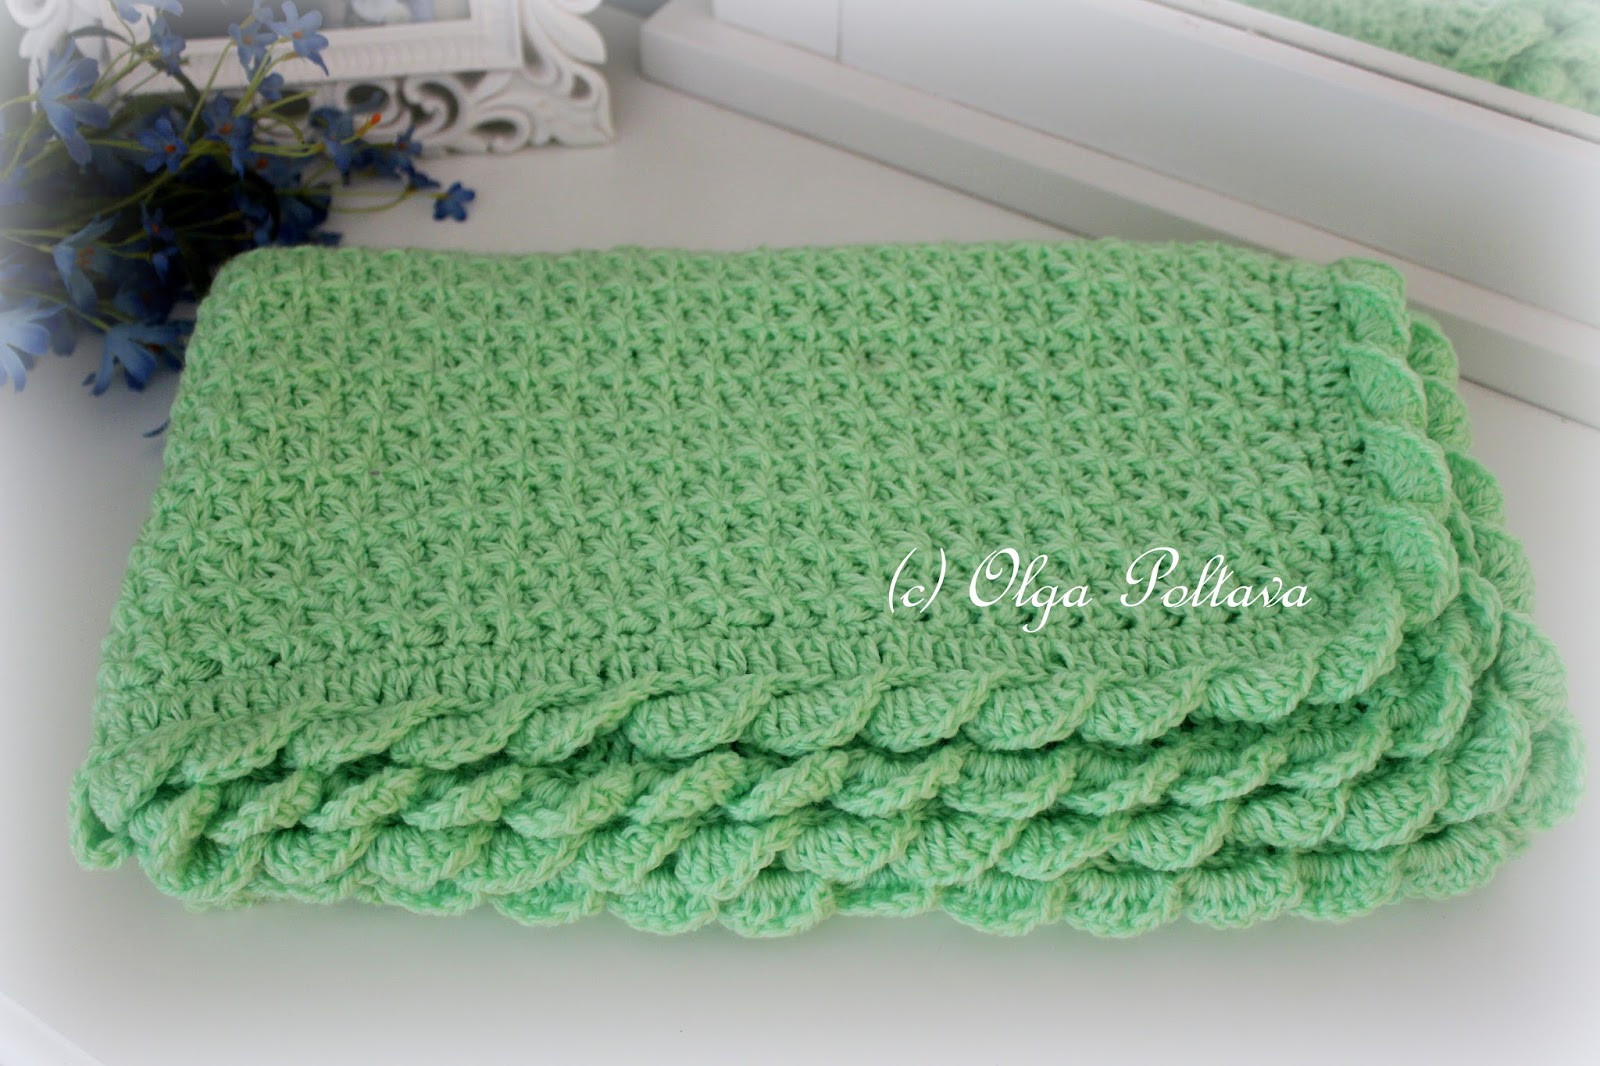 New Lacy Crochet Star Stitch Baby Blanket with Scalloped Trim Best Crochet Stitch for Blanket Of Perfect 45 Ideas Best Crochet Stitch for Blanket